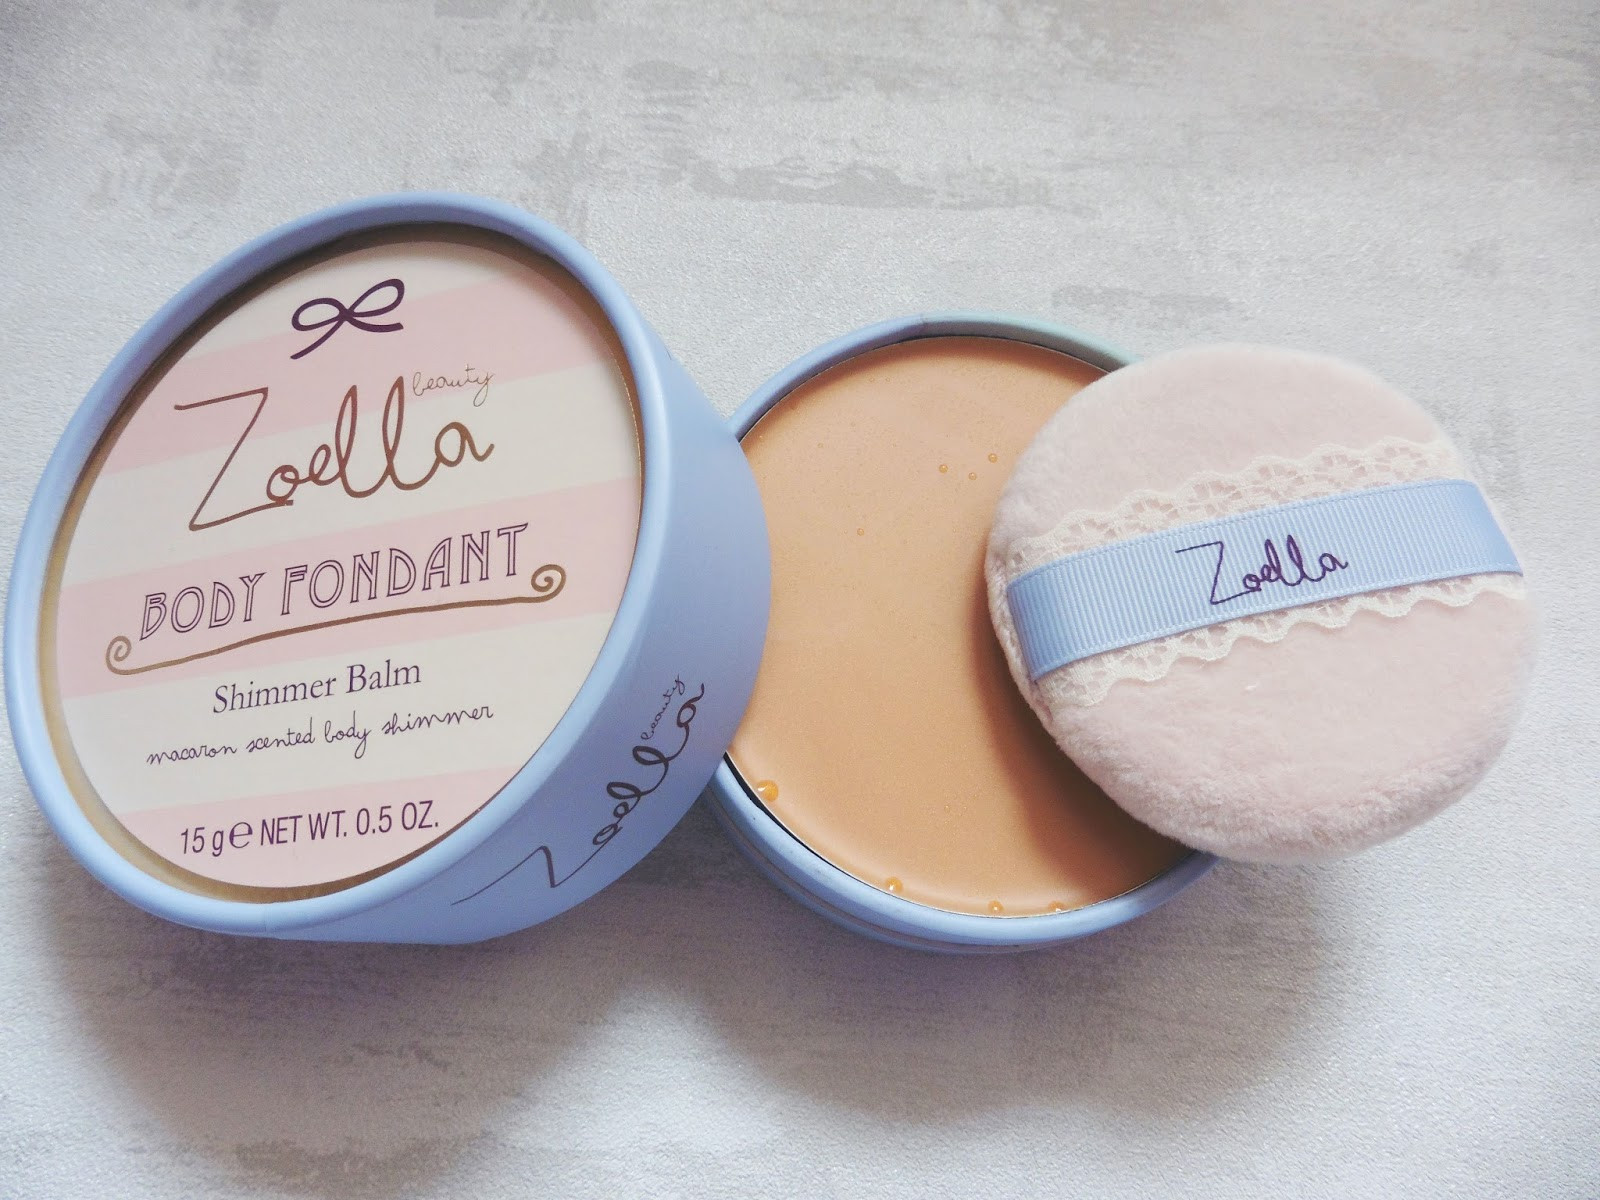 lebellelavie - Testing out Zoella beauty products